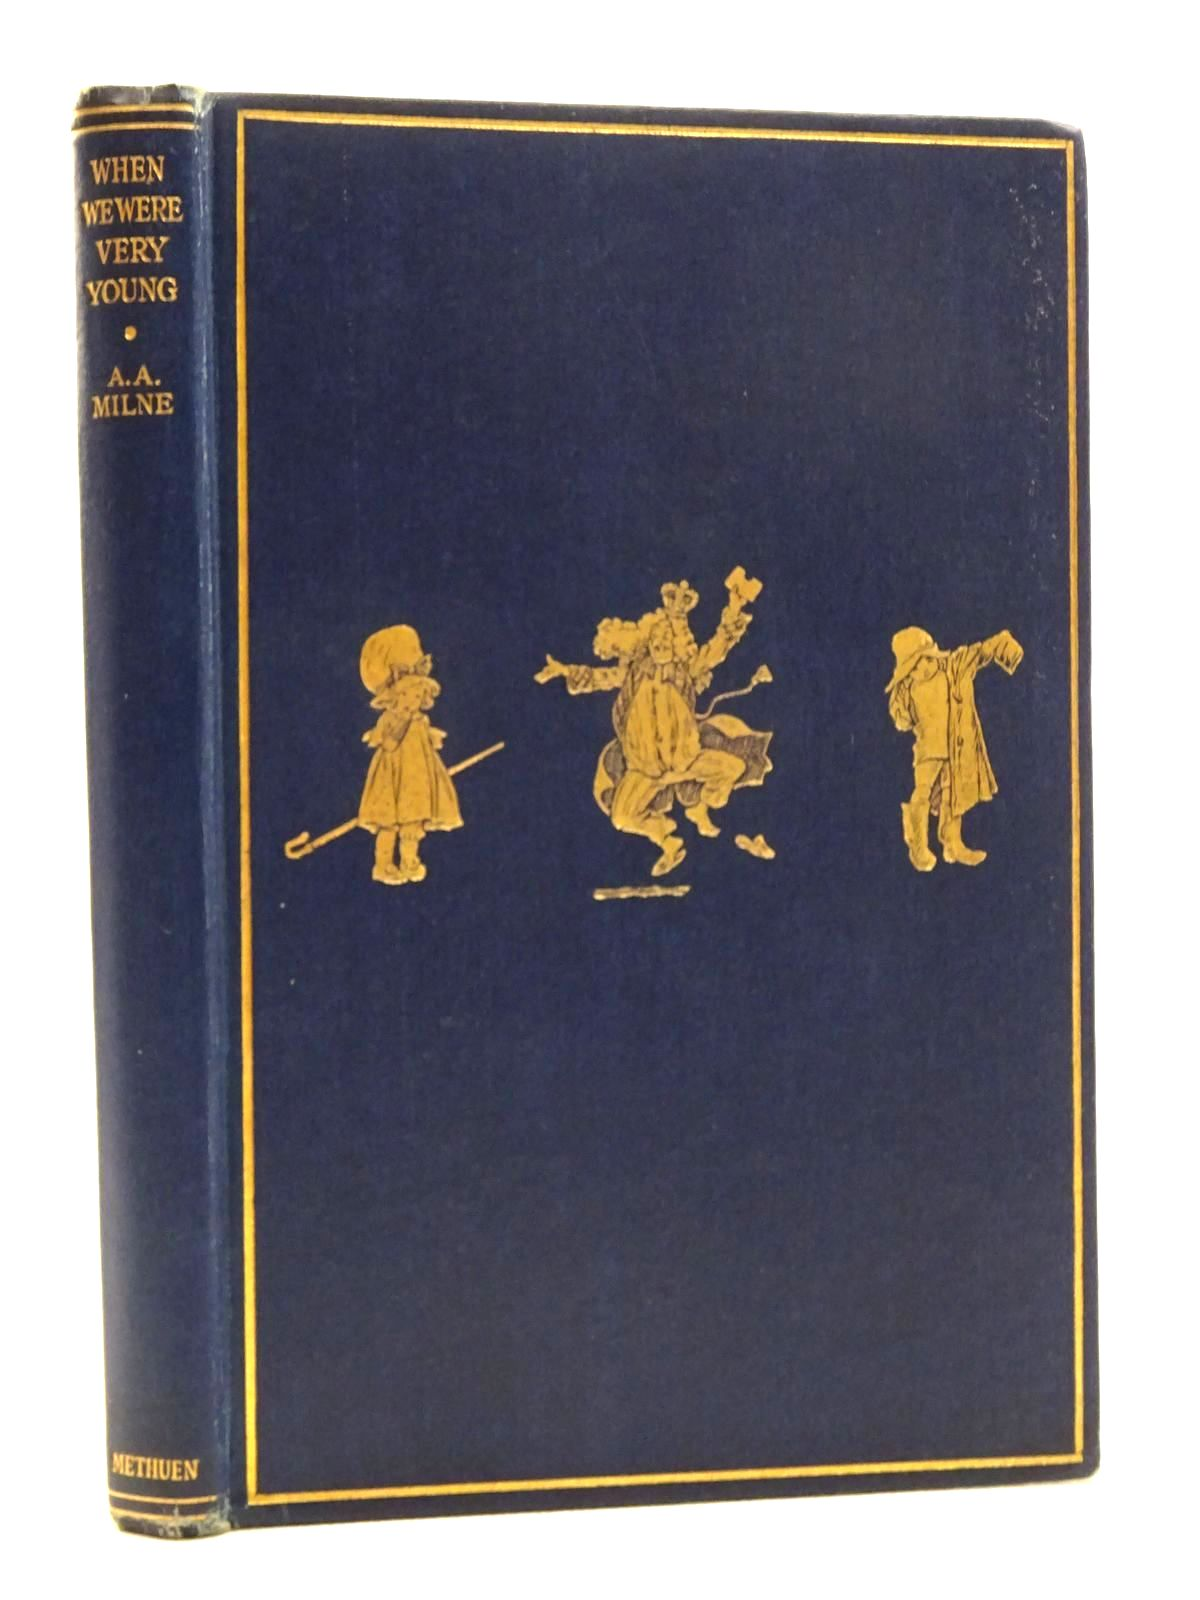 Photo of WHEN WE WERE VERY YOUNG written by Milne, A.A. illustrated by Shepard, E.H. published by Methuen & Co. Ltd. (STOCK CODE: 2125345)  for sale by Stella & Rose's Books